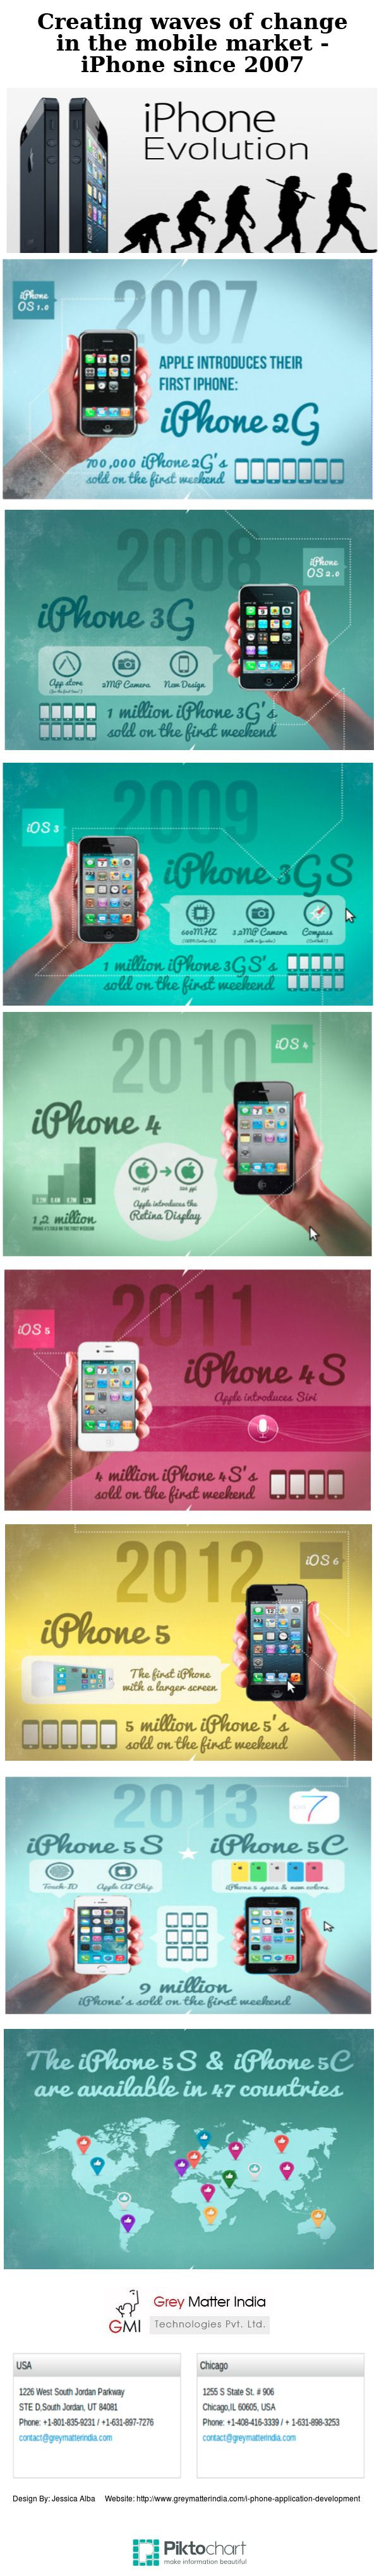 iPhone Evolution Since 2007  #Infographic #iPhone #Mobile